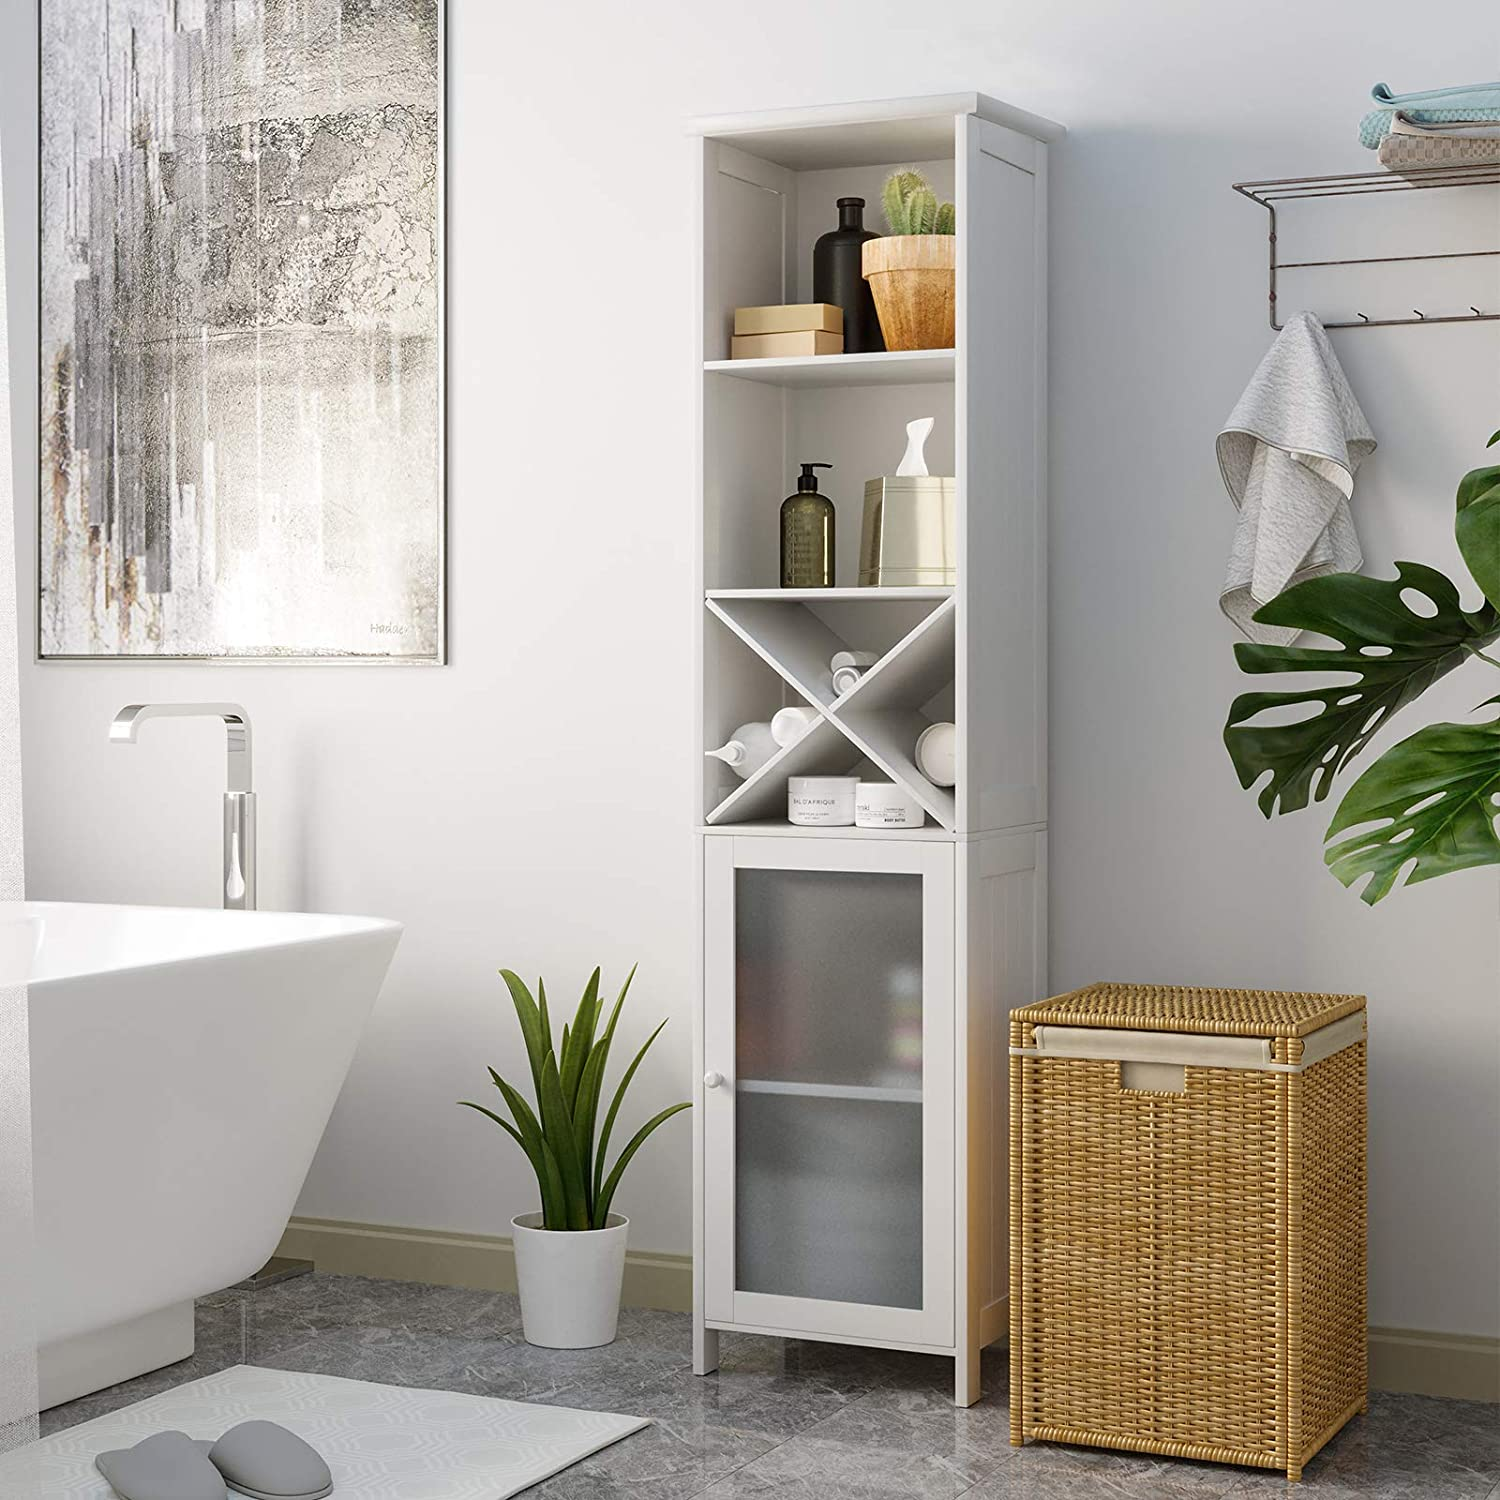 Stand Space Saving Floor Cabinet, Tall Bathroom Shelving Units